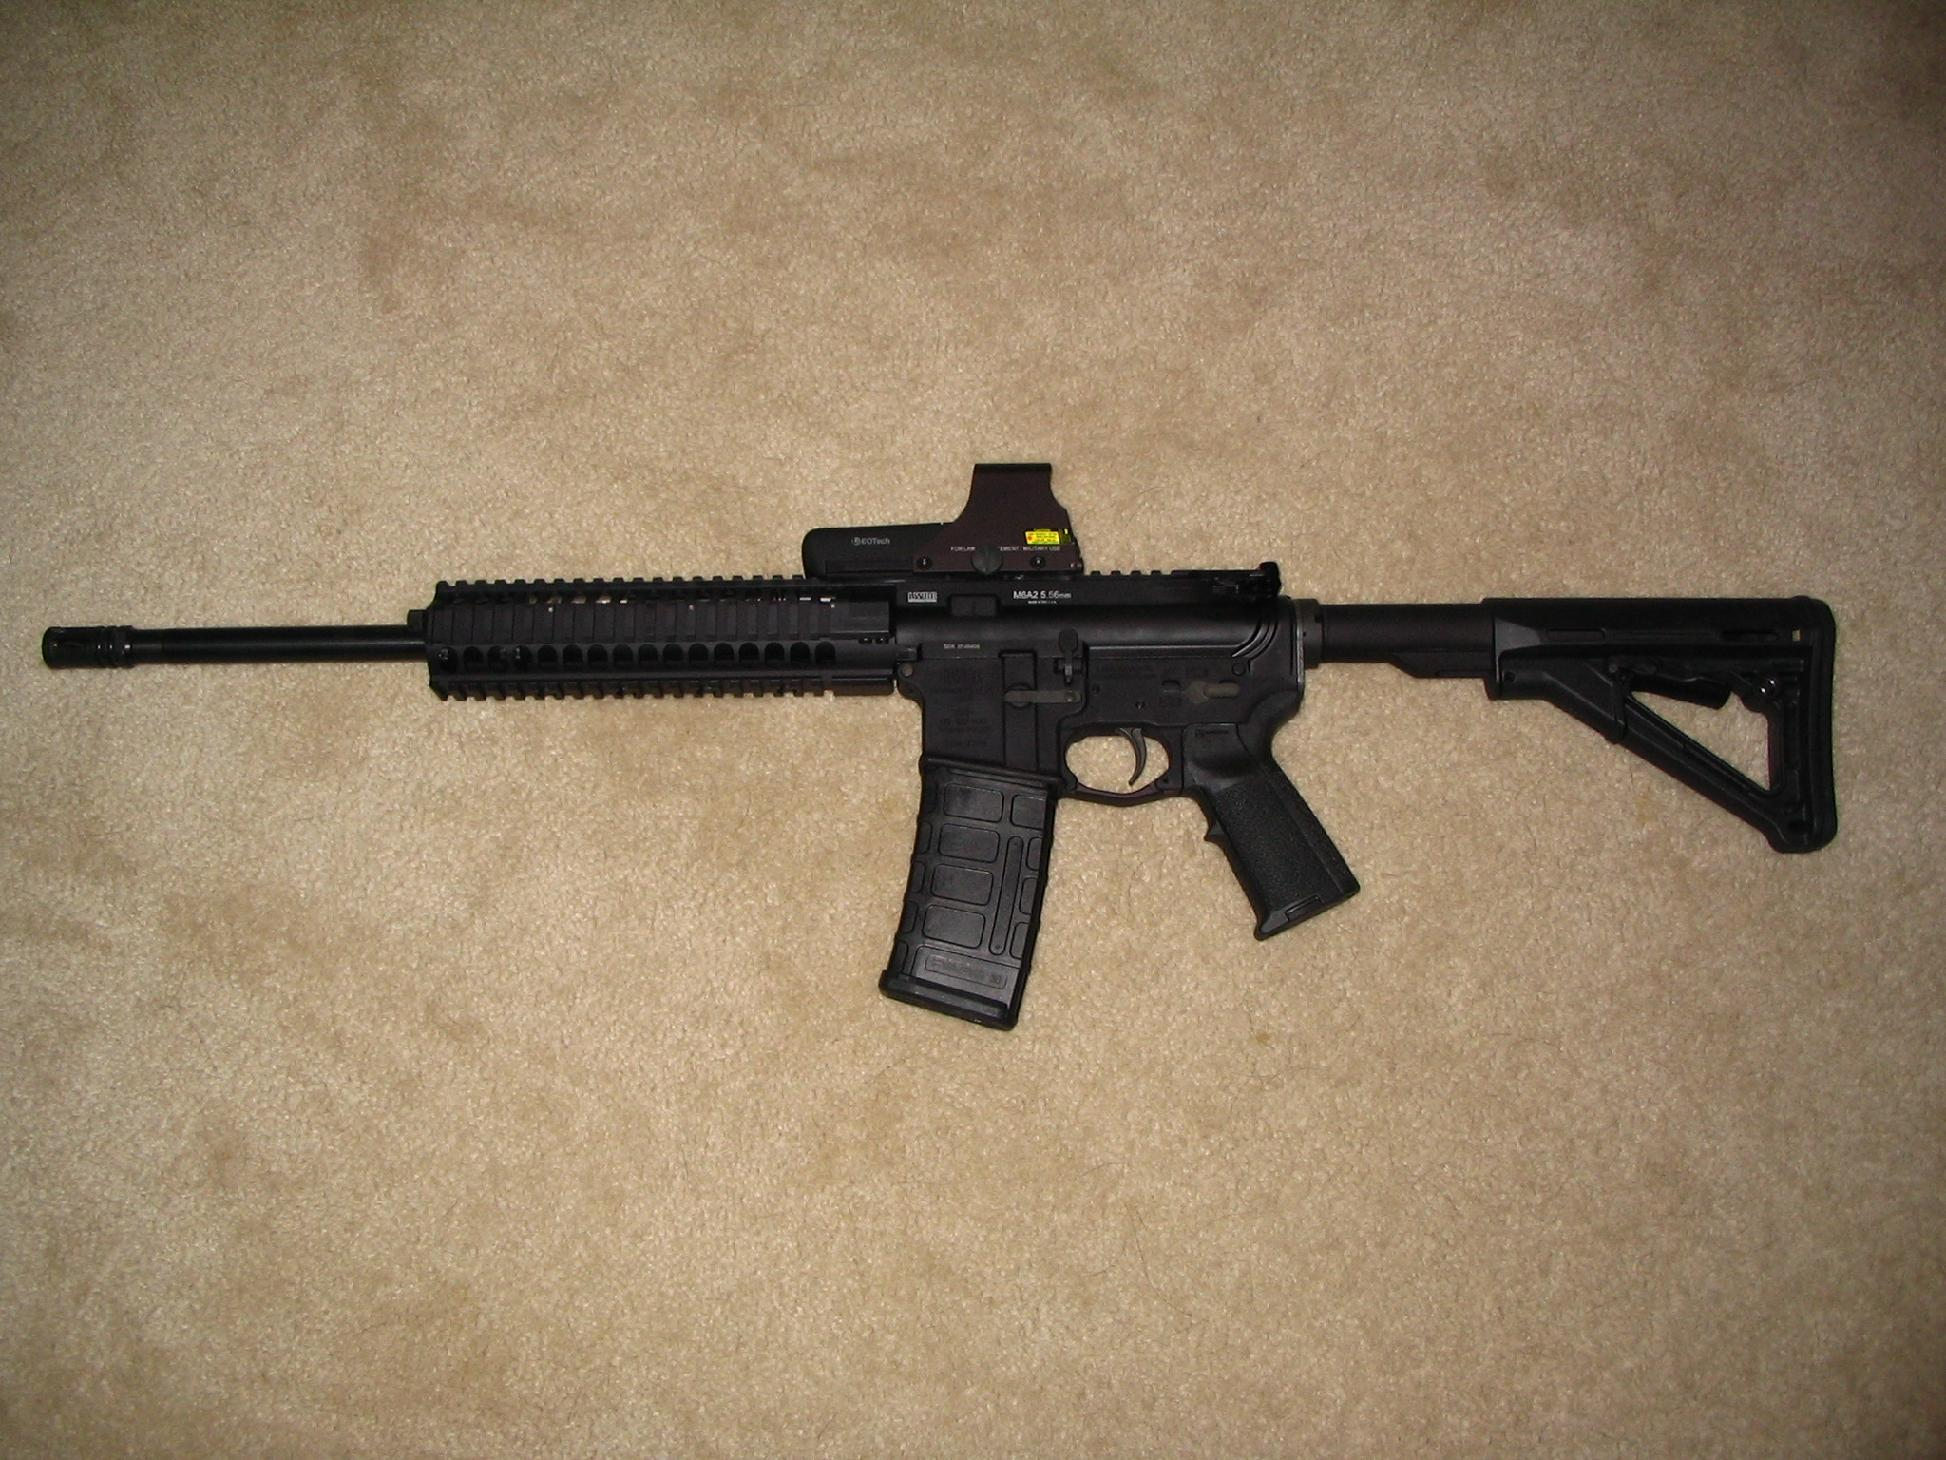 New LWRC M6A2-picture-001small.jpg